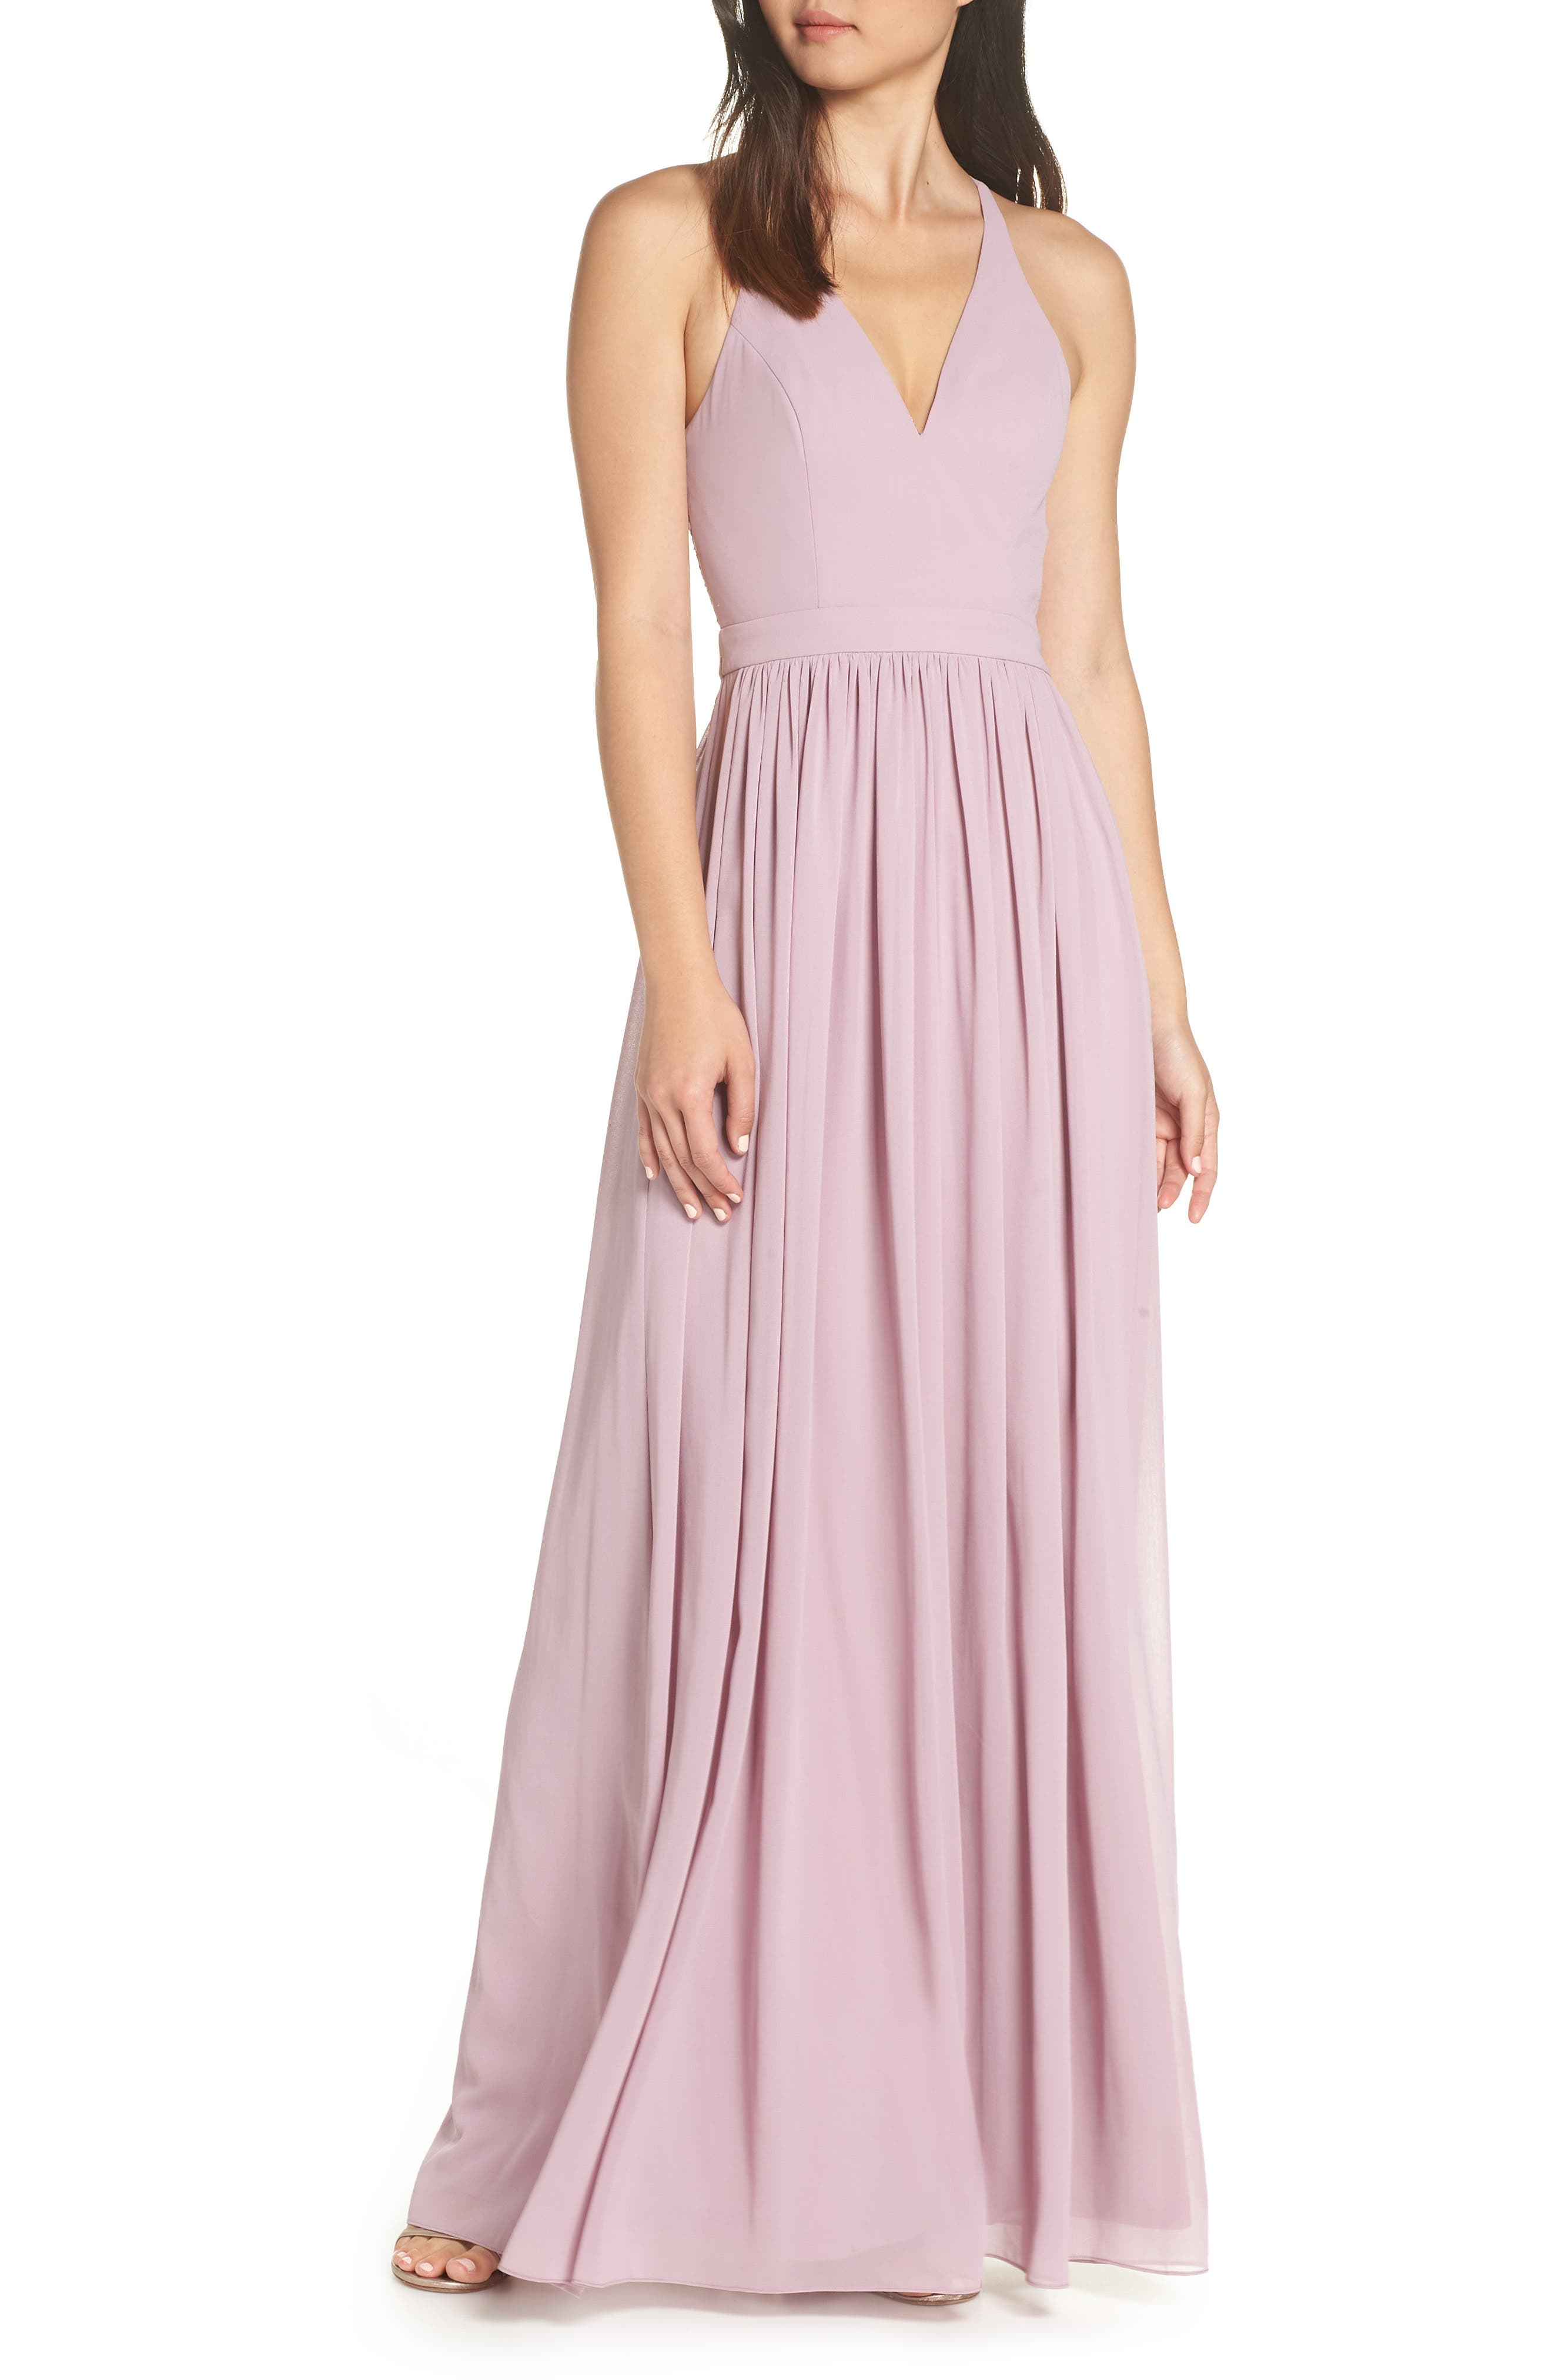 LULUS, Everlasting Beauty Lace Back Chiffon Gown, Main thumbnail 1, color, LAVENDER